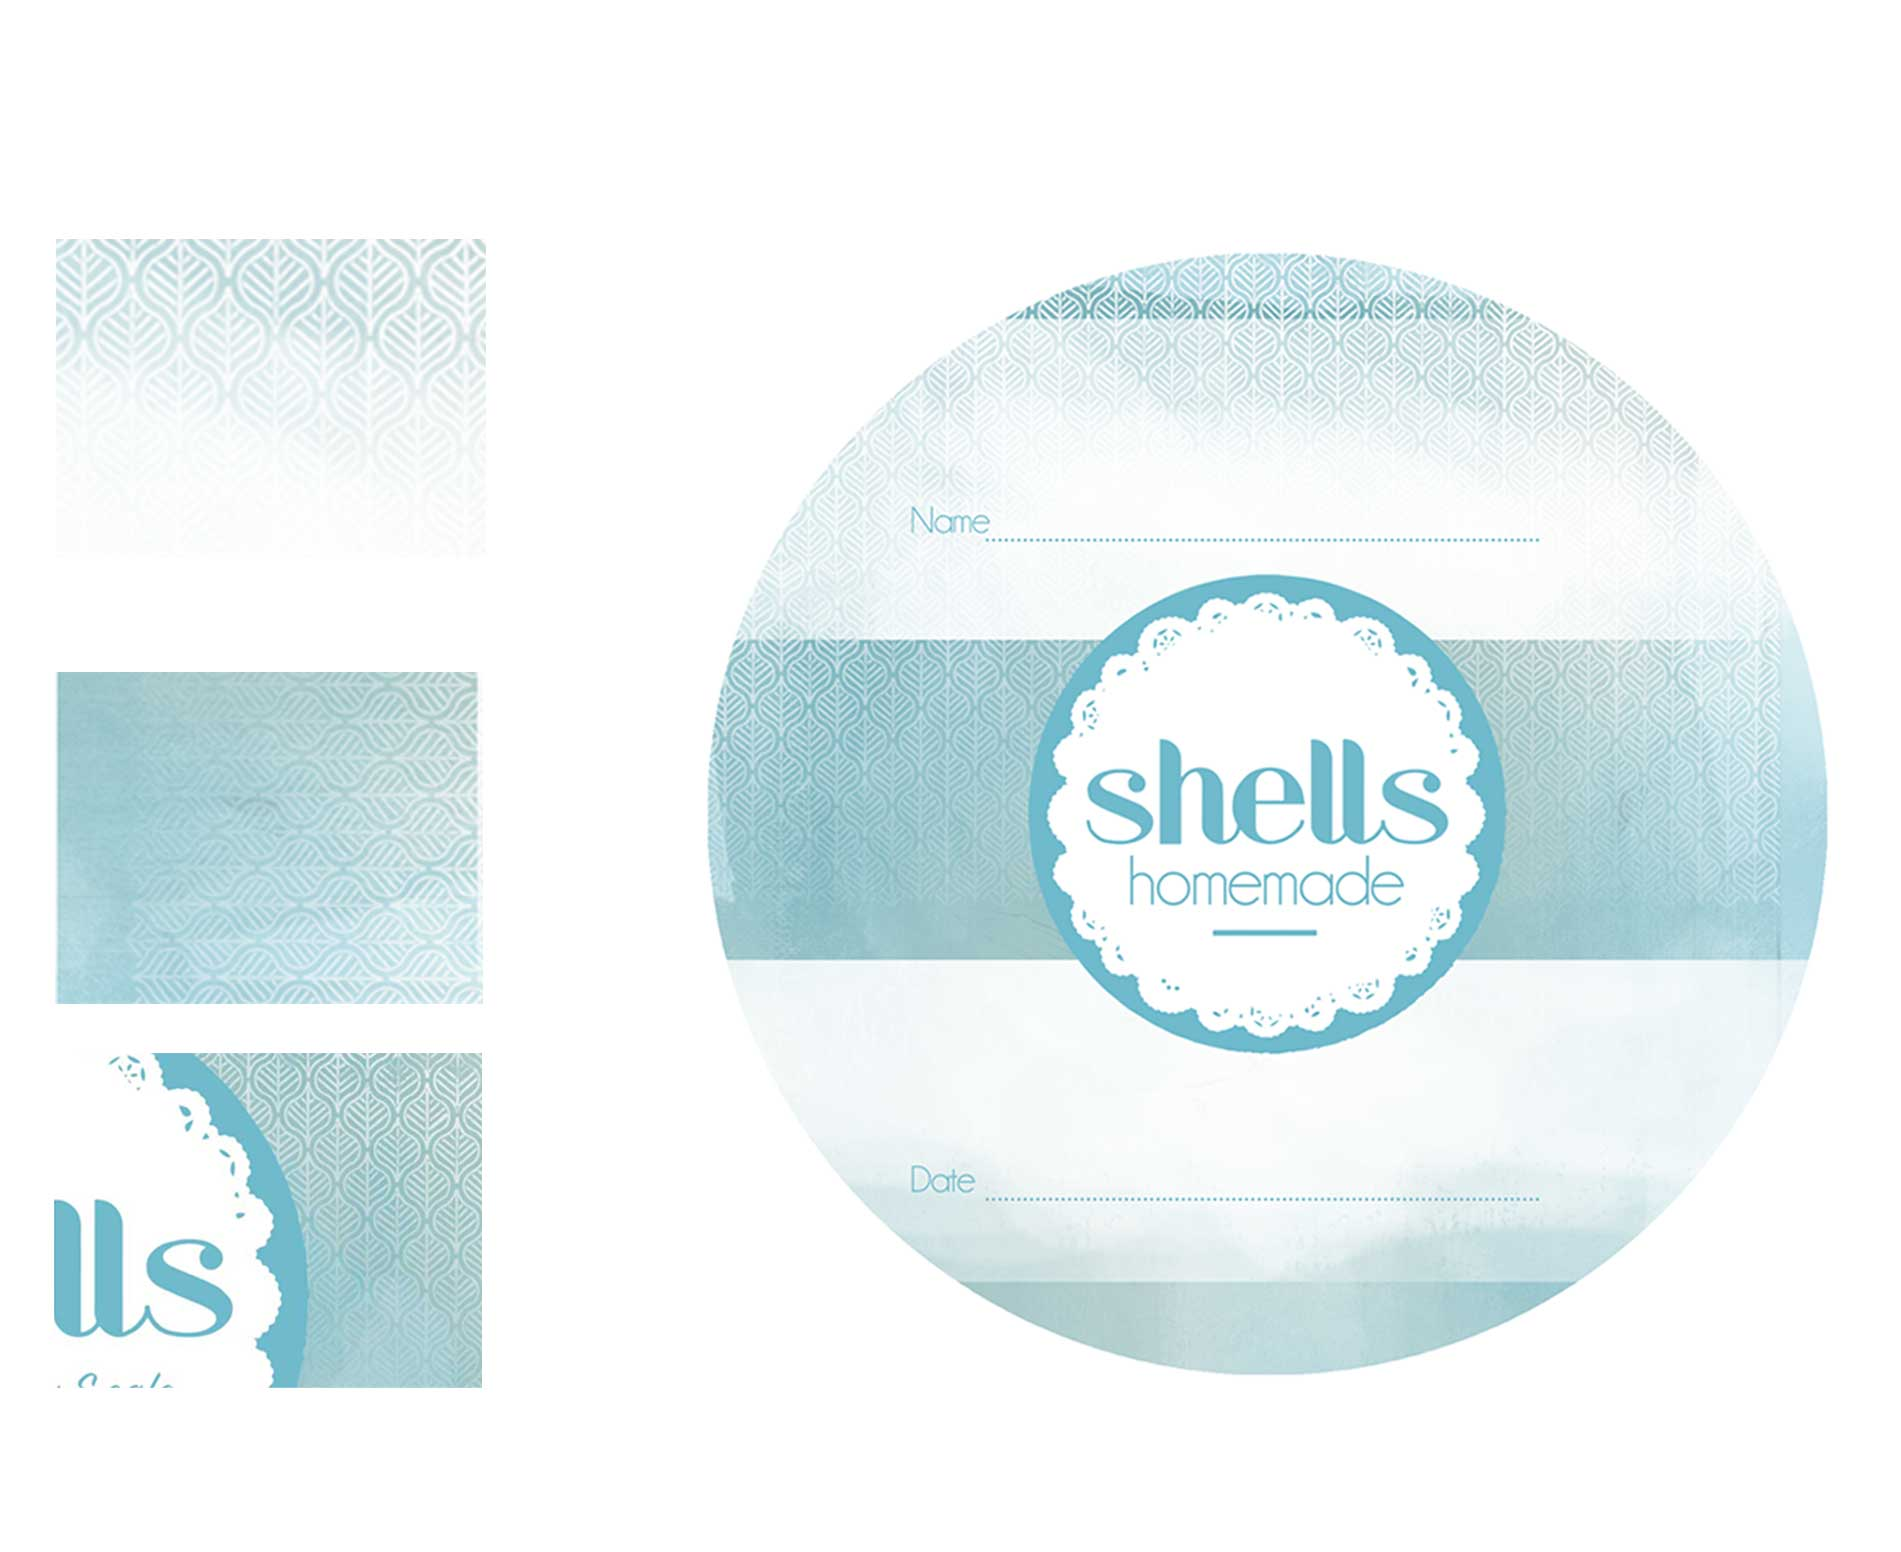 Working on these beautiful labelswith the wonderful Jane and Miles of 'Shells Cafe' in Strandhill, Ireland